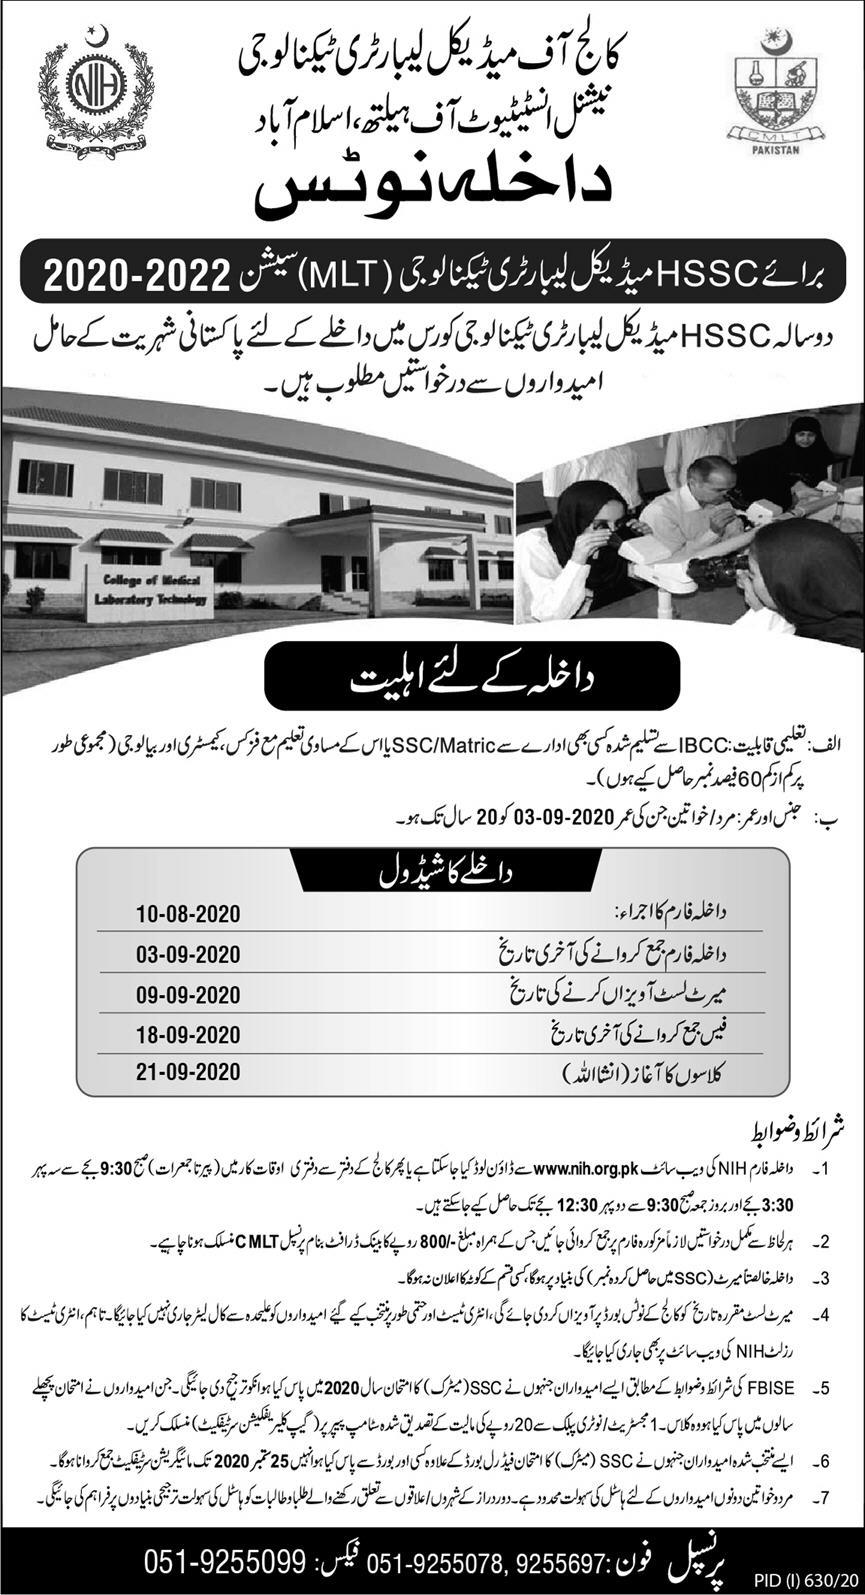 CMLT NIH Islamabad Admission 2020 in HSSC Level Programs-Form, Entry Test